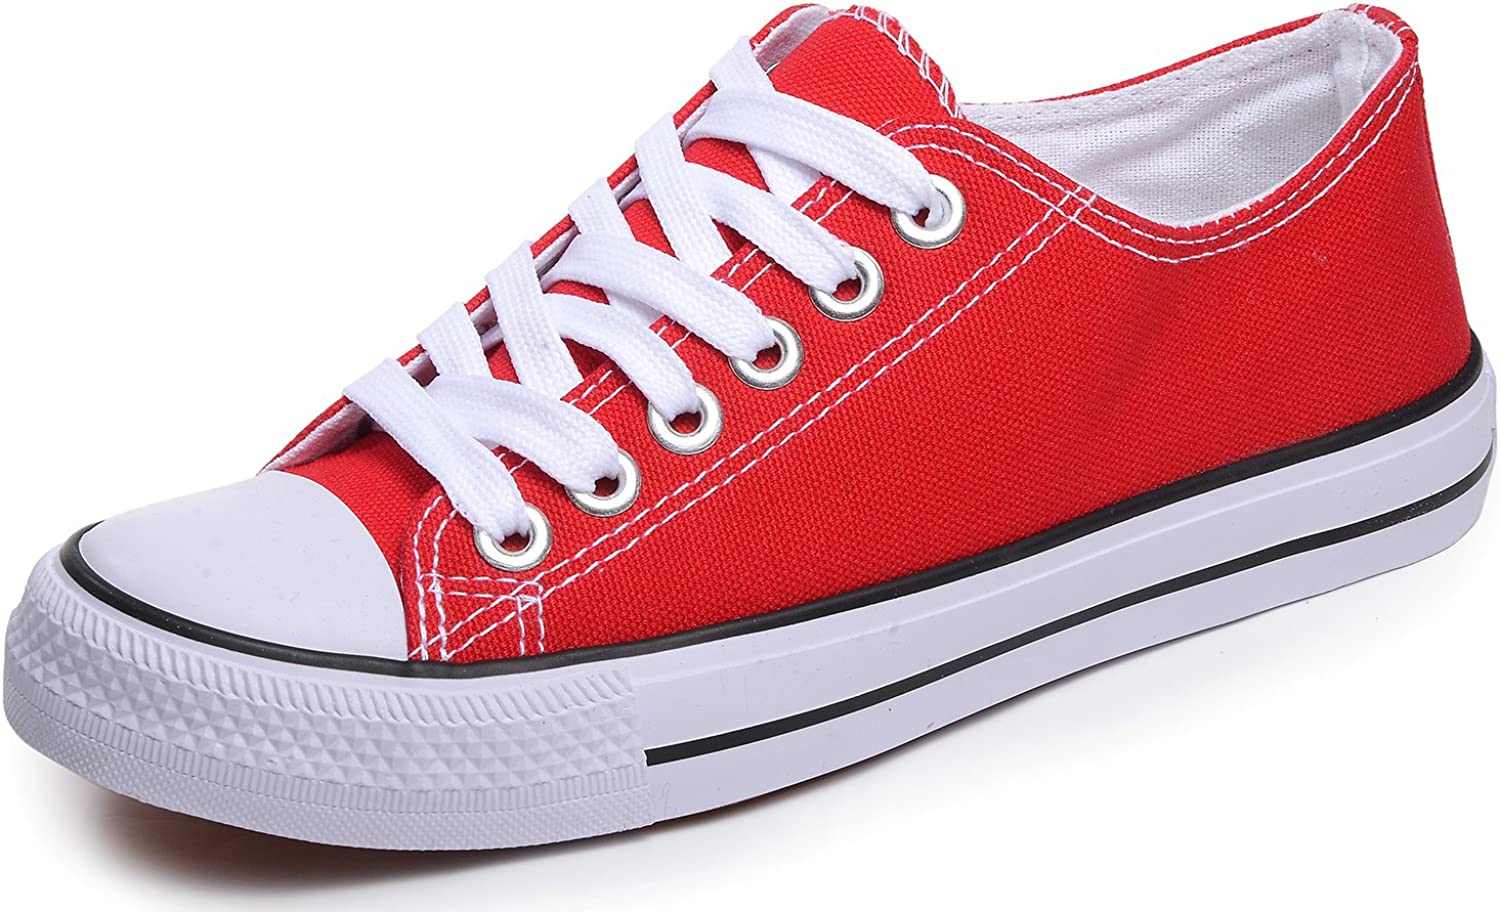 Odema Women Men Lace Up Canvas Shoes Fashion Sneakers Classic Casual Preppy Style Flat Shoes Red